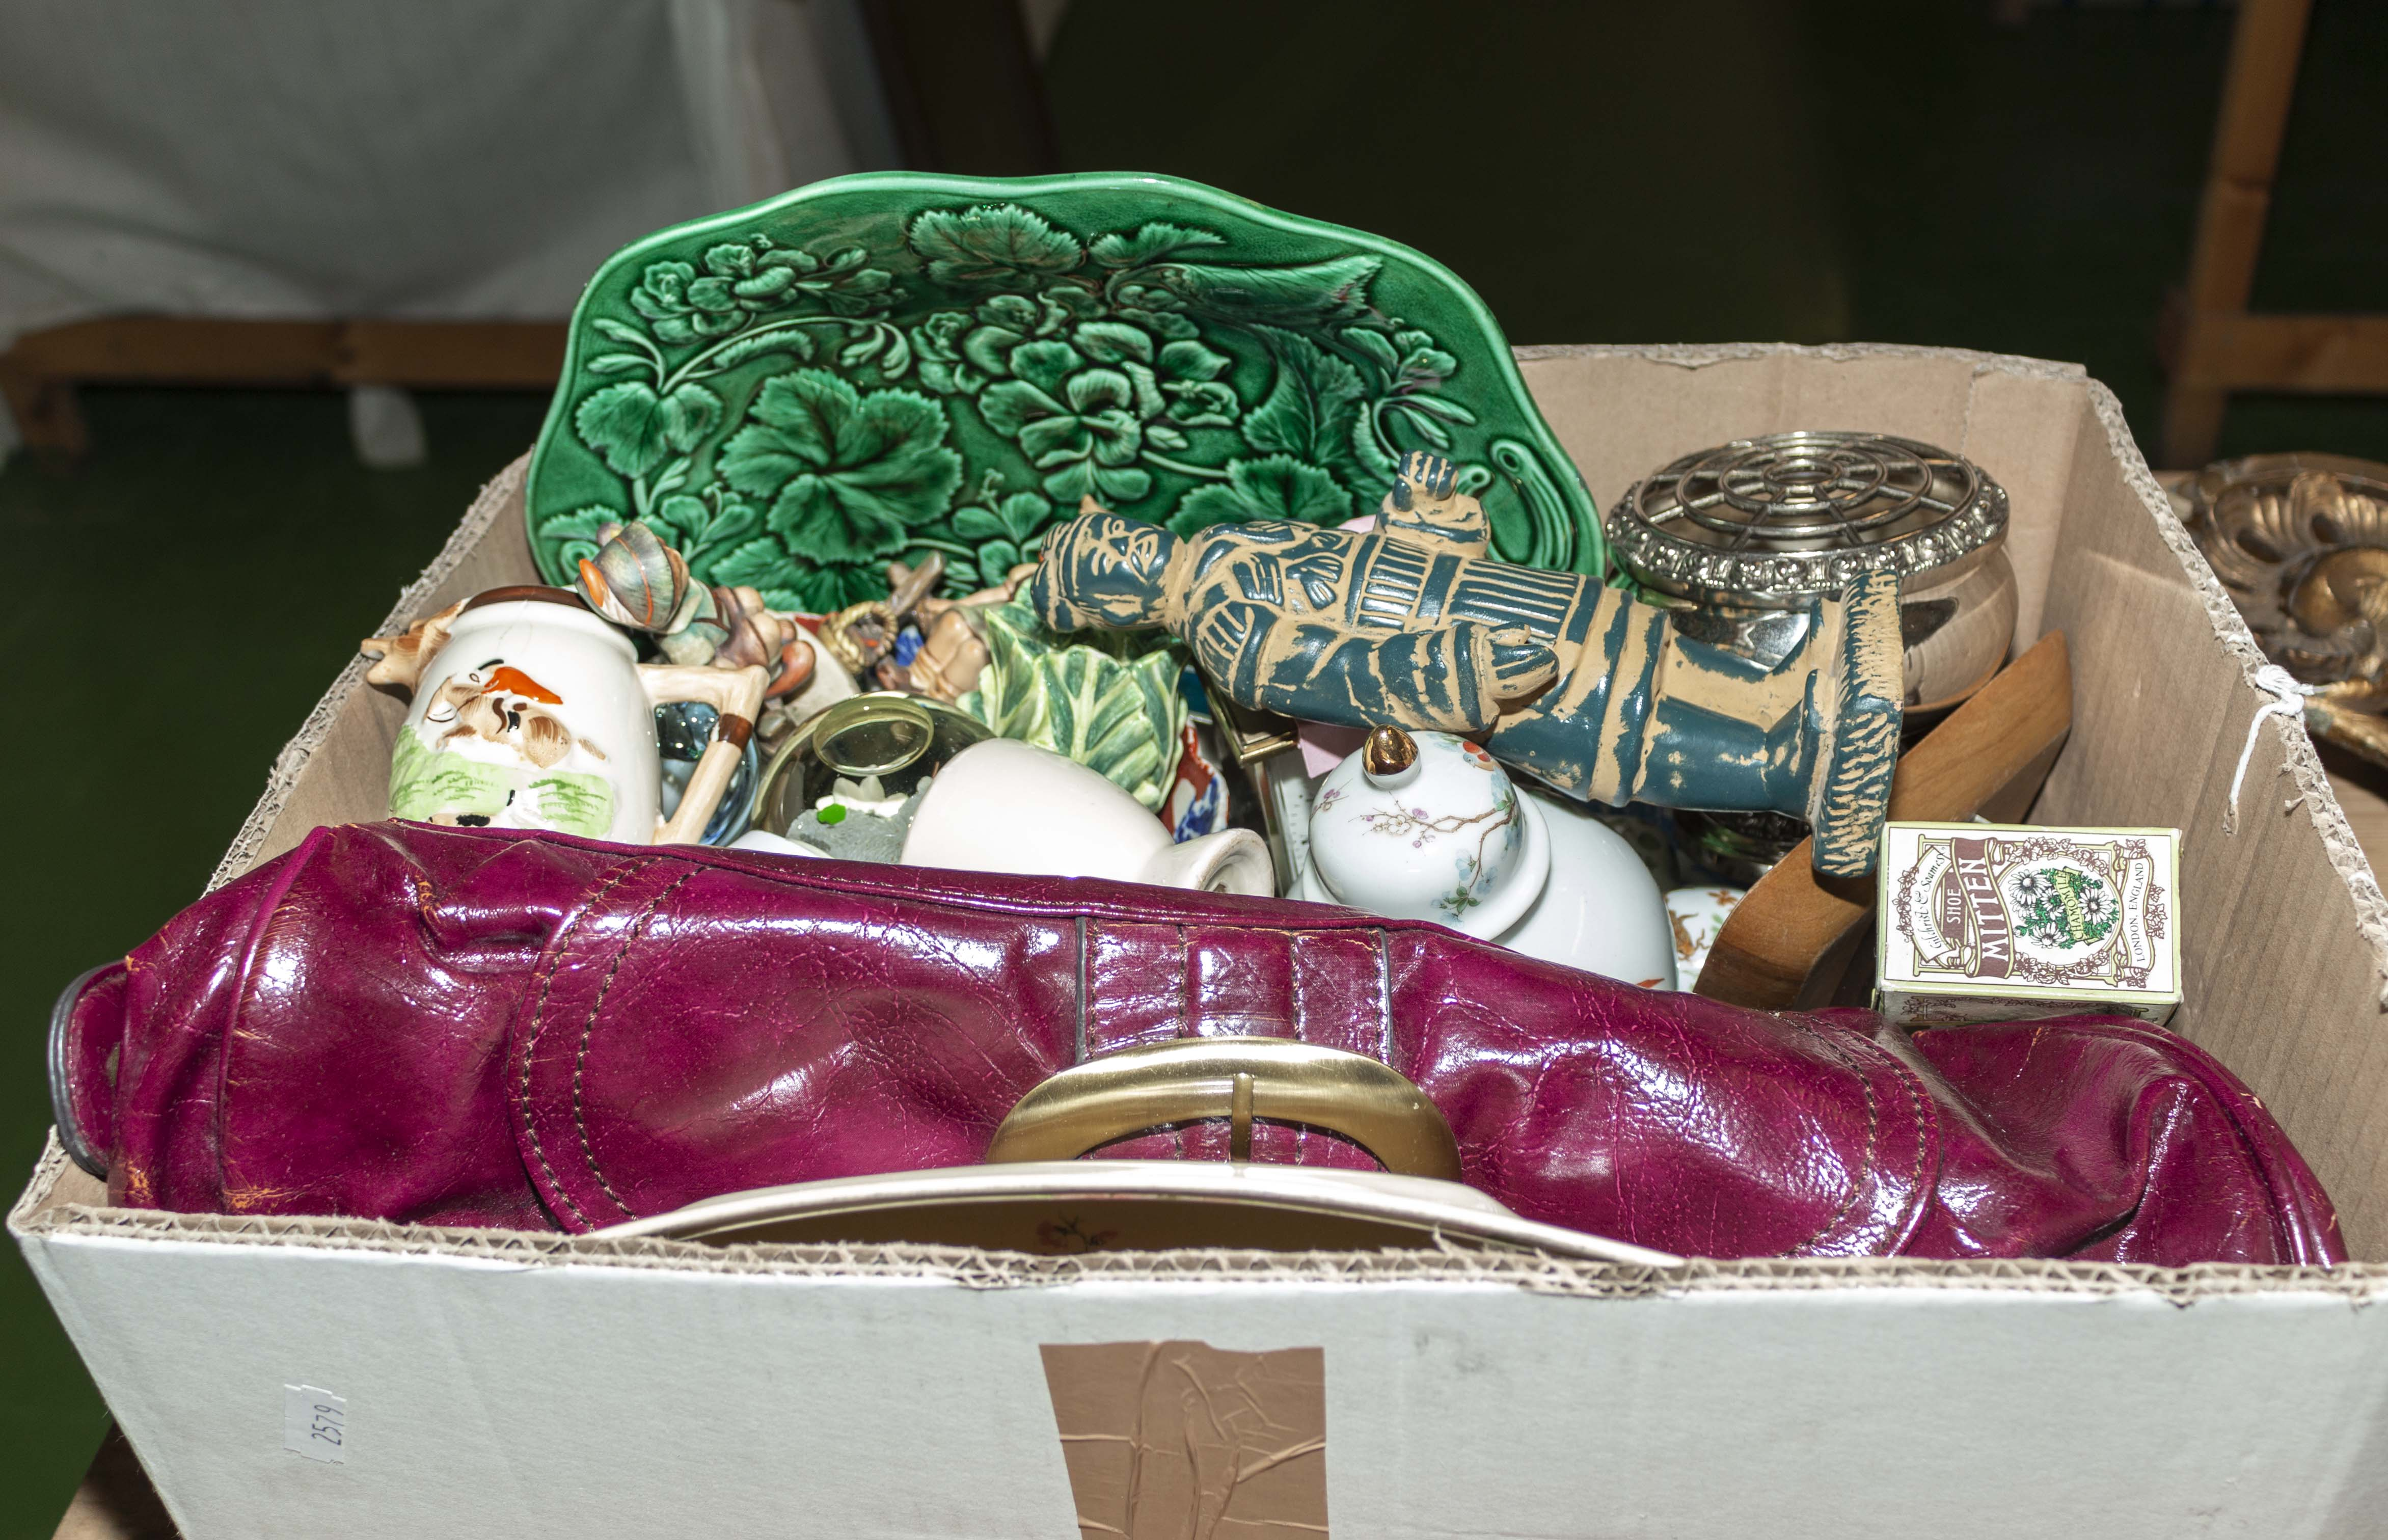 Lot 25 - A box containing pottery items and others